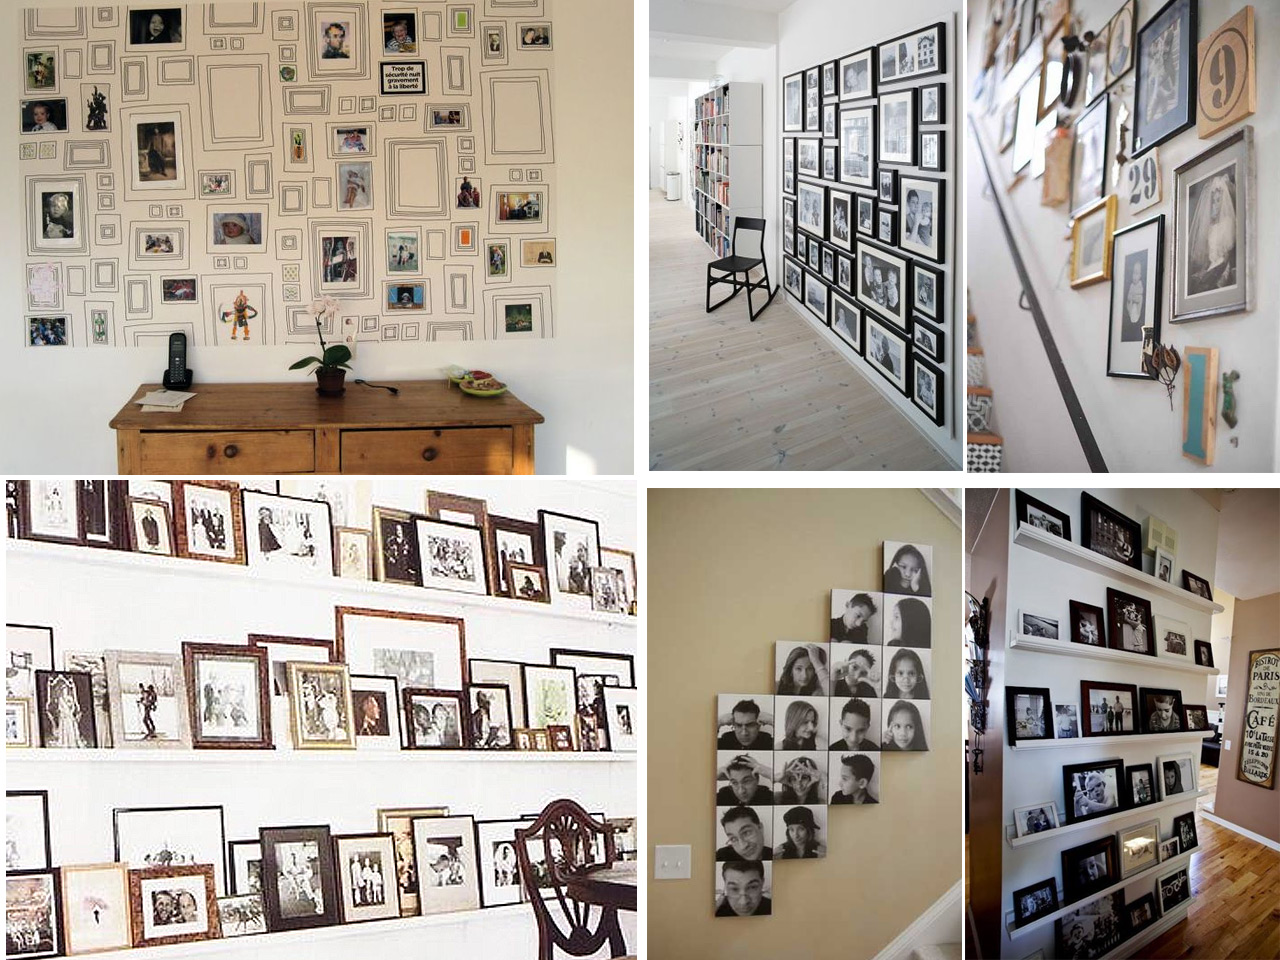 60 brillantes ideas para decorar con fotos familiares - Como decorar paredes salon ...